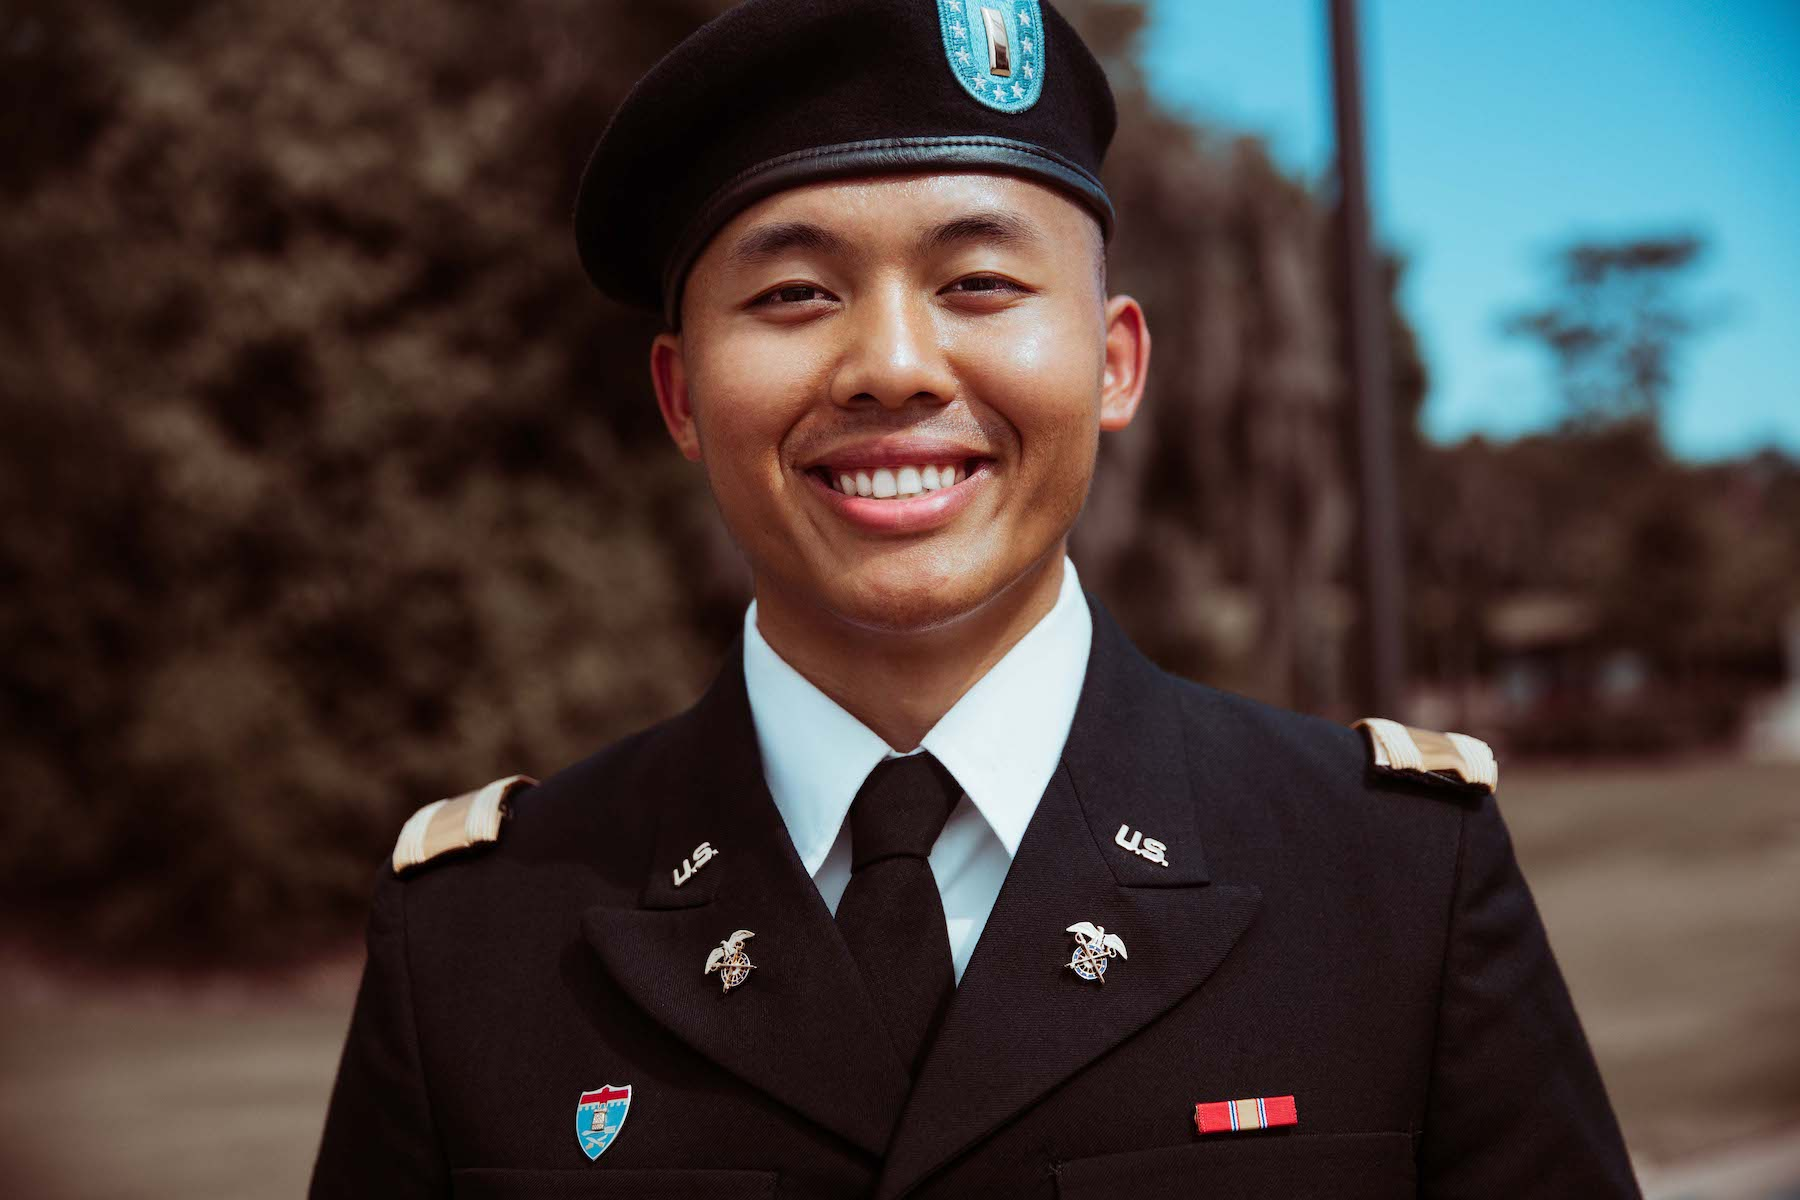 Hmong American First Lieutenant remembered as caring, driven young man